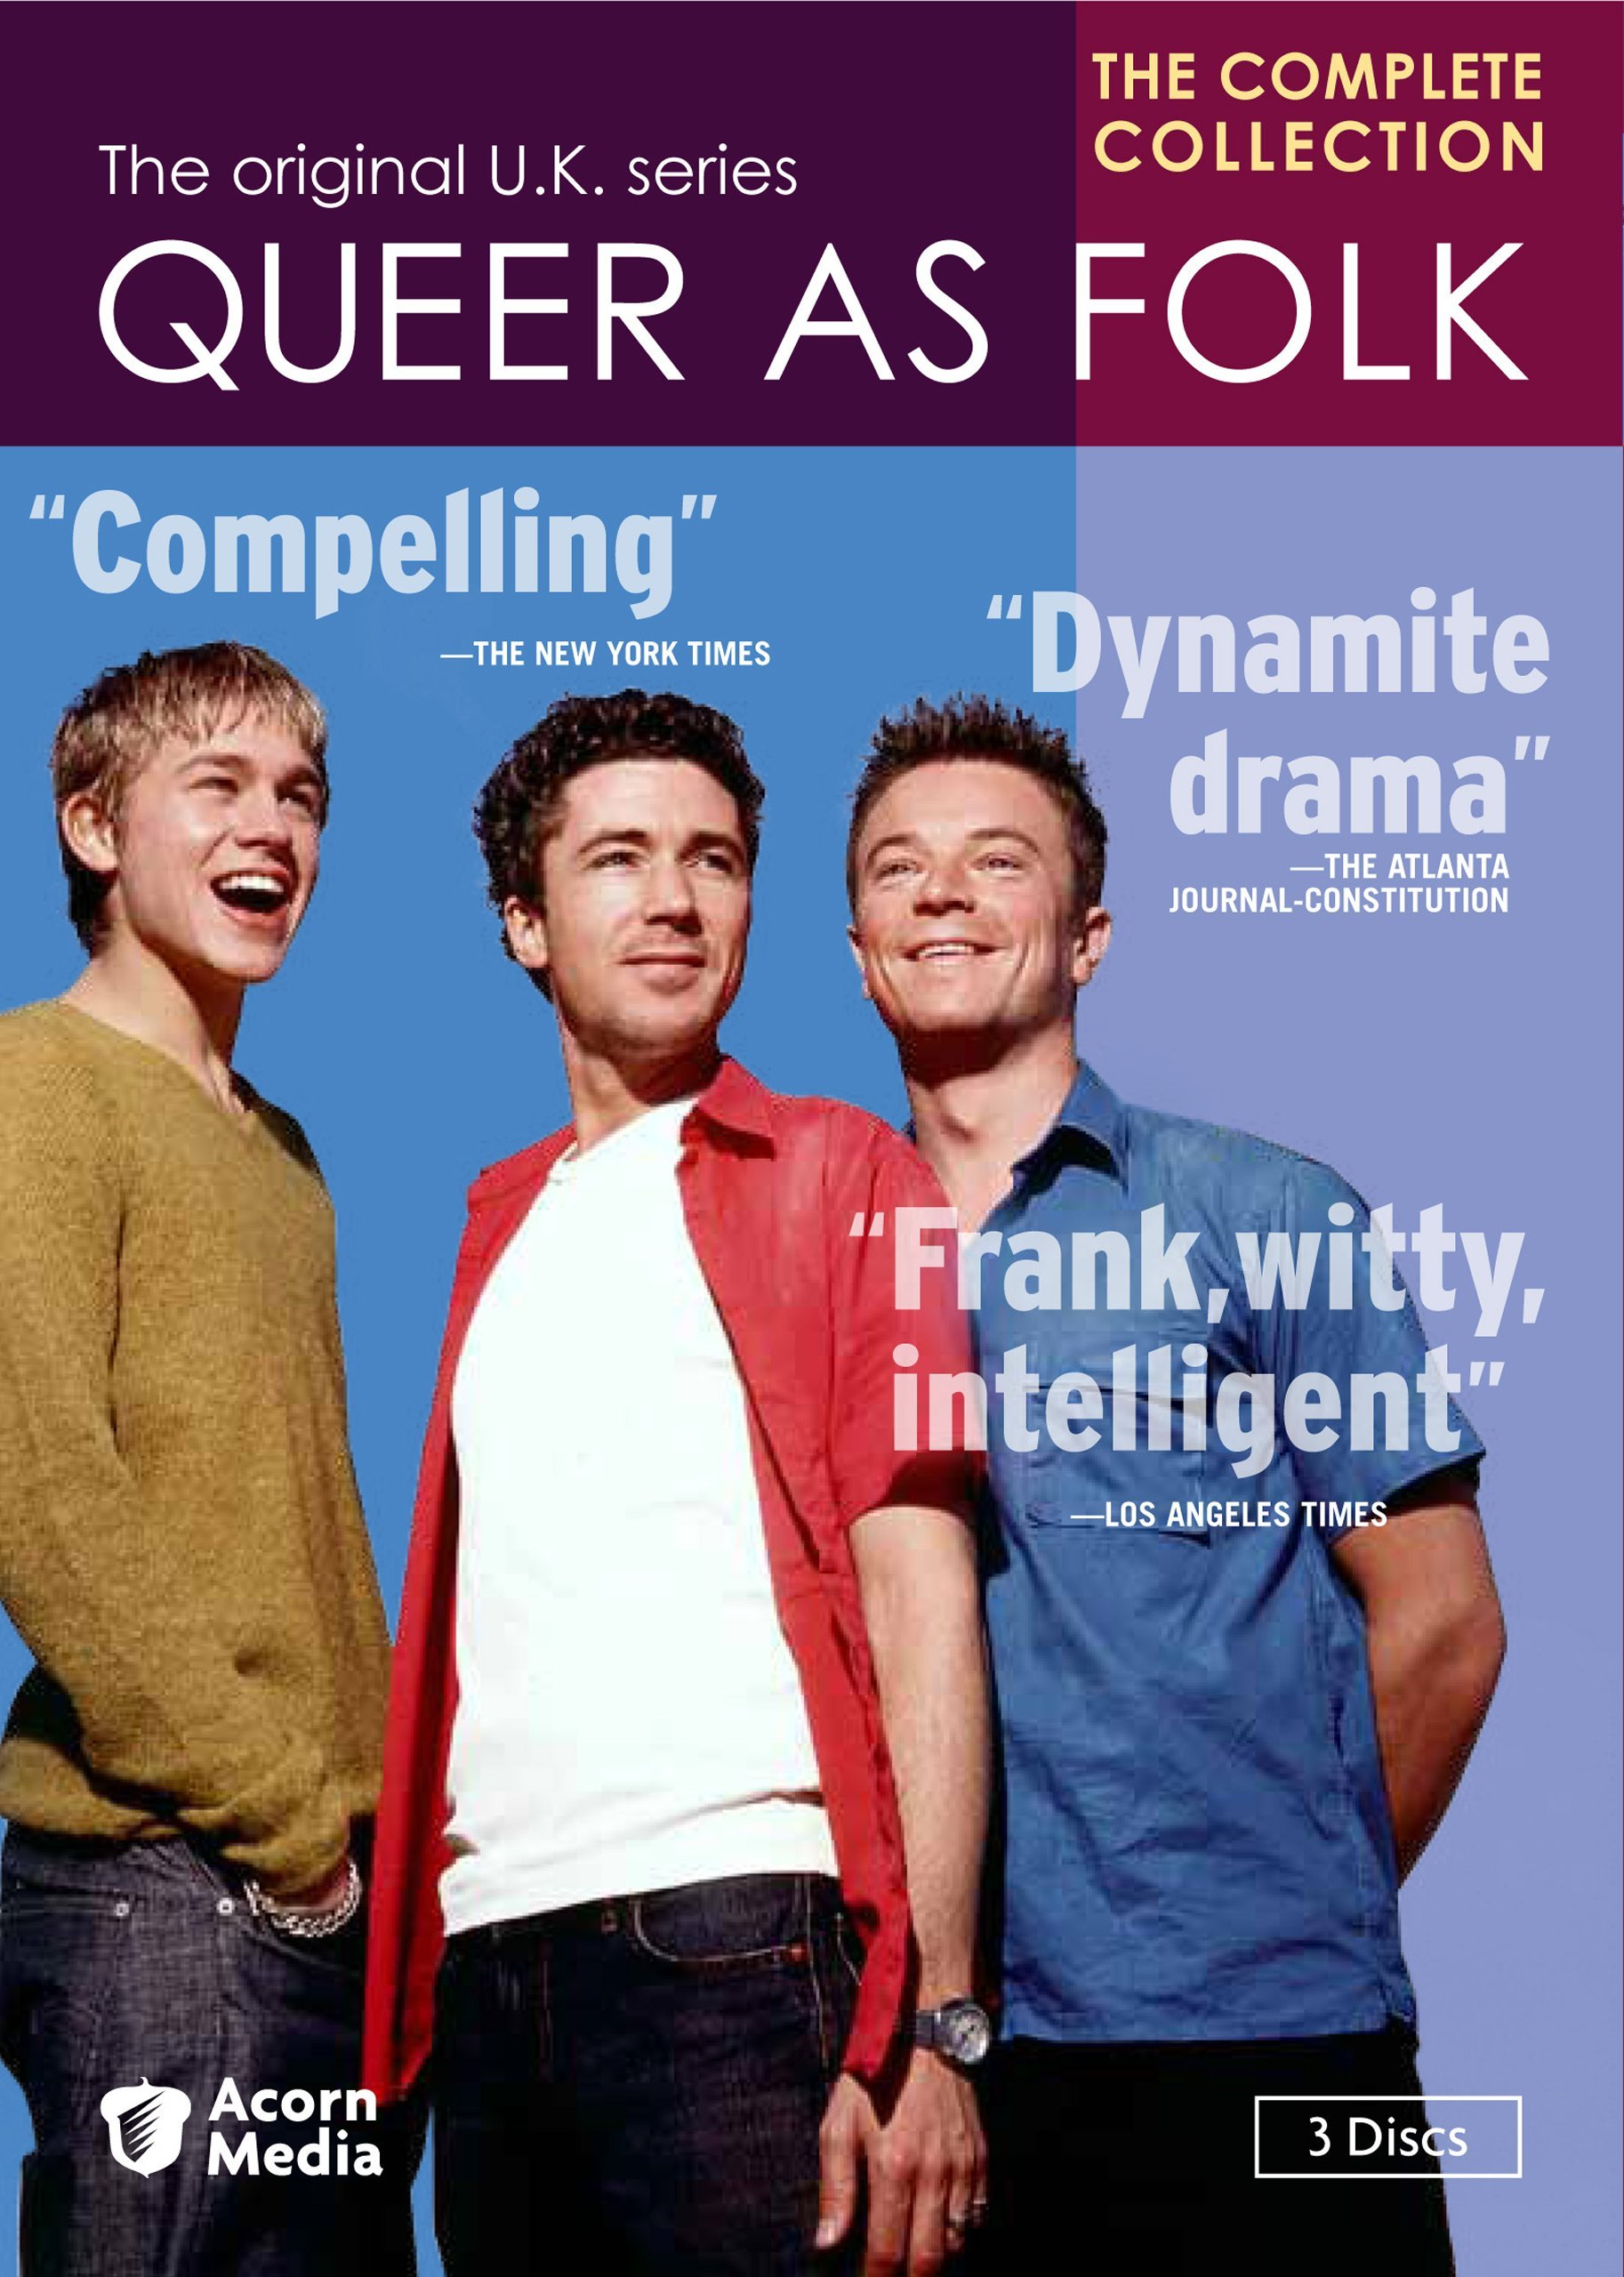 QUEER AS FOLK: THE COMPLETE U.K. COLLECTION by Acorn Media